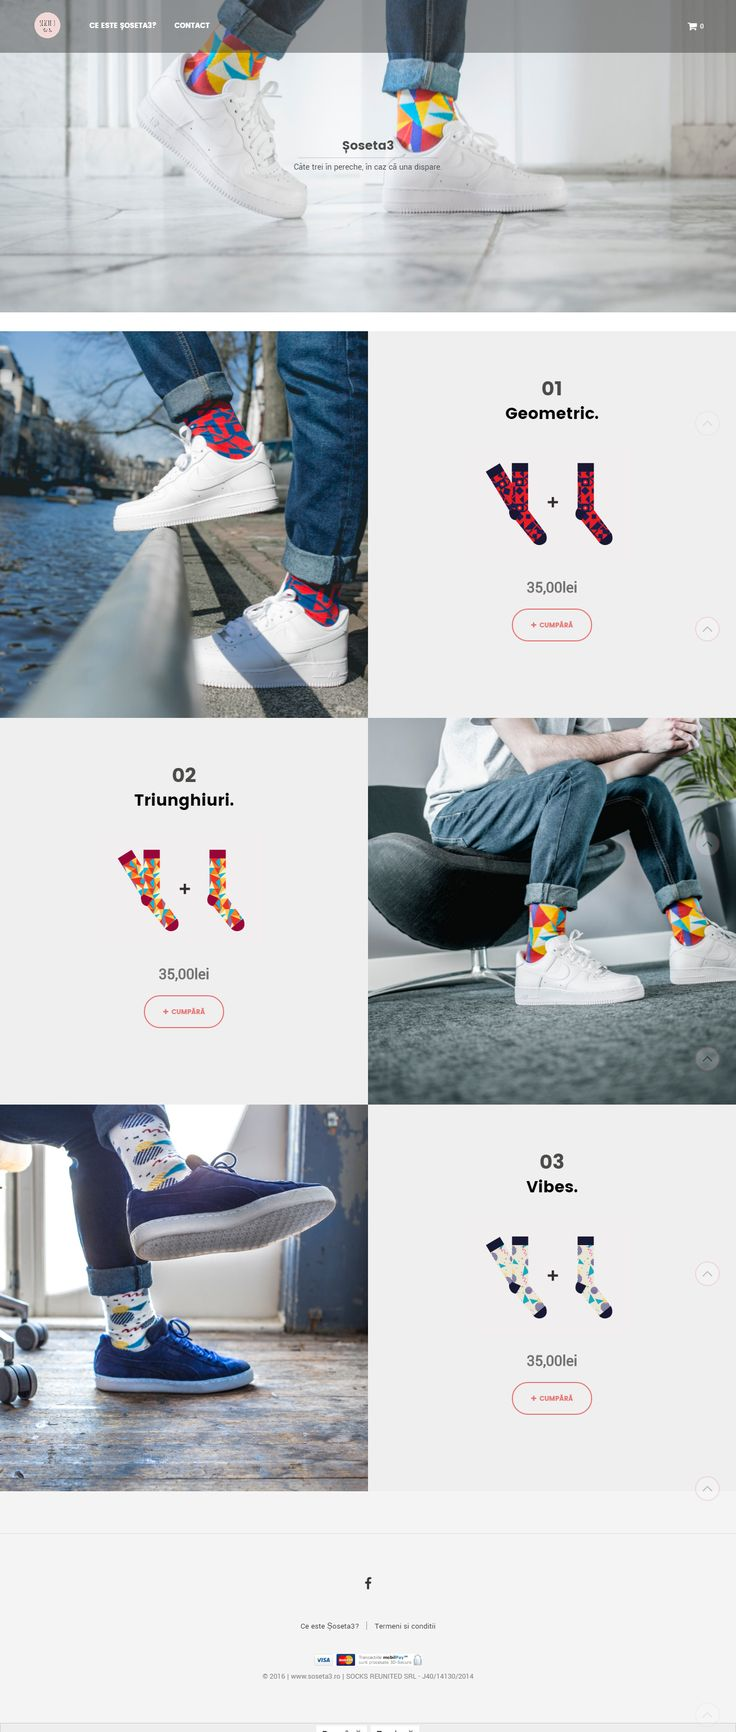 A funky socks shop created using Shopkeeper theme for WordPress http://themeforest.net/item/shopkeeper-responsive-wordpress-theme/9553045?&utm_source=pinterest.com&utm_medium=social&utm_content=soseta&utm_campaign=showcase #onlineshop #ecommerce #socks #clothing #webdesign #UX